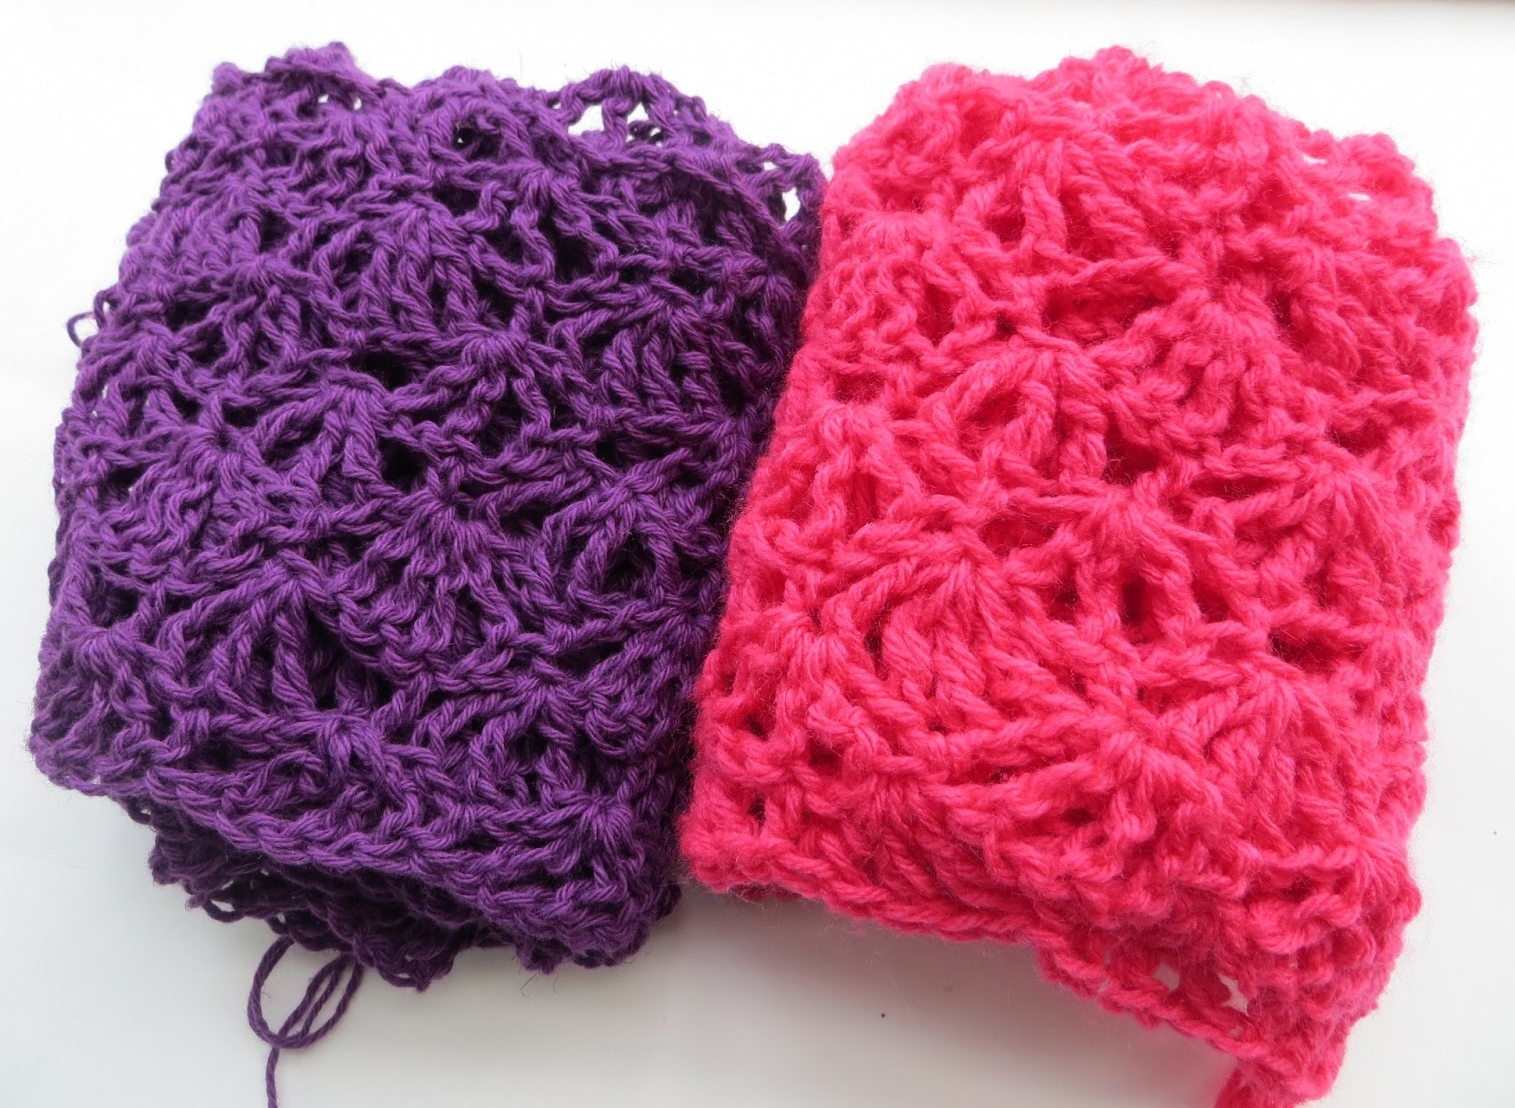 Crocheting Scarves : Crochet Dreamz: Alana Lacy Scarf, Free Crochet Pattern